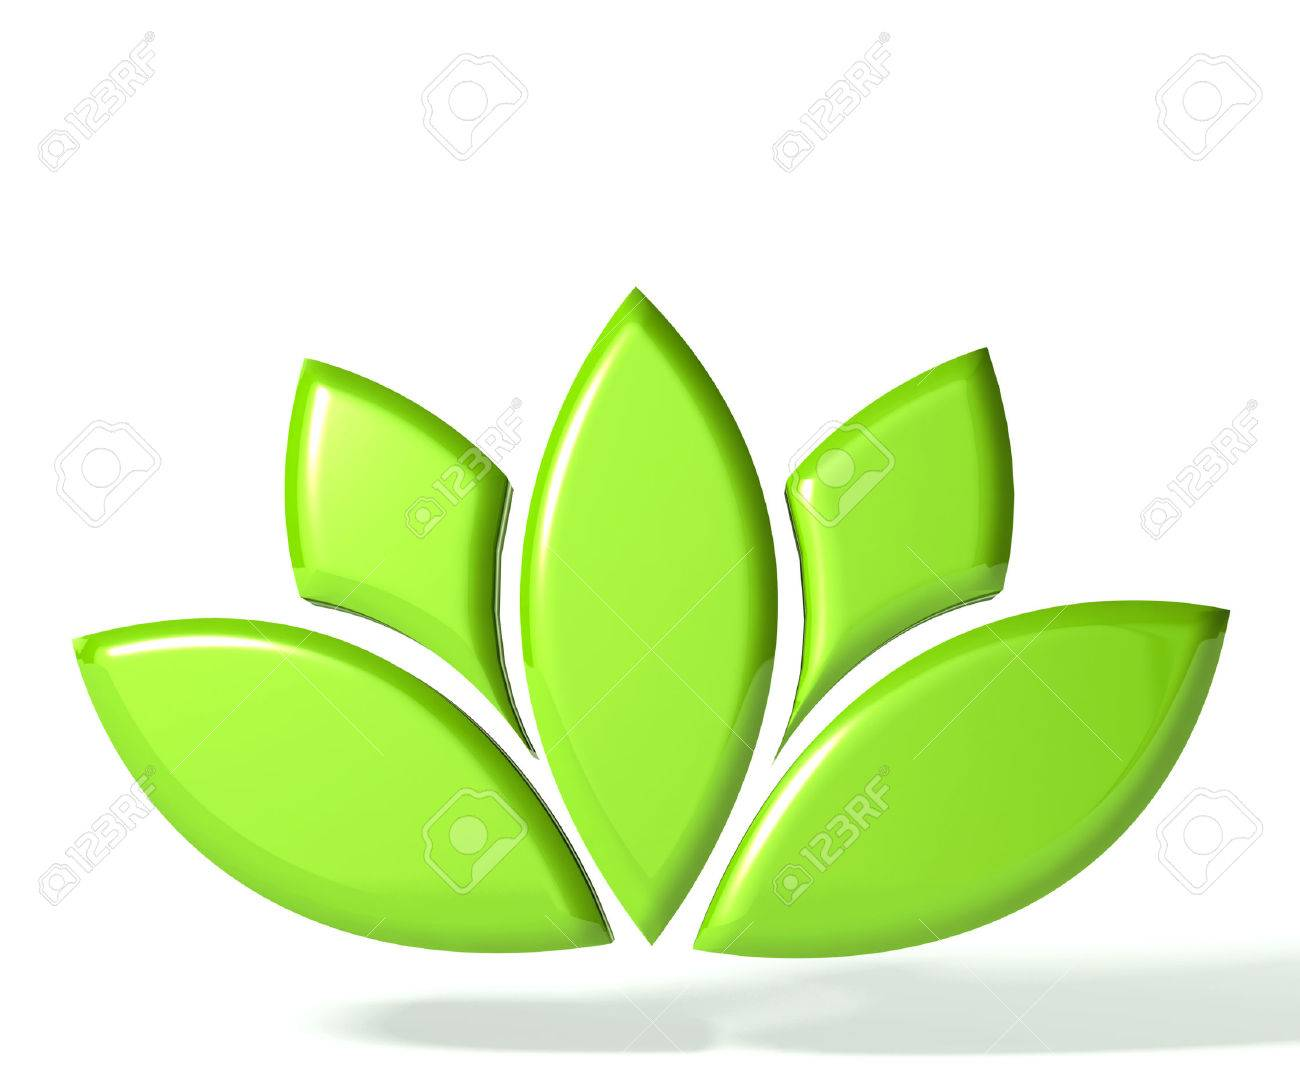 Green Lotus Flower 3d Image Stock Photo Picture And Royalty Free